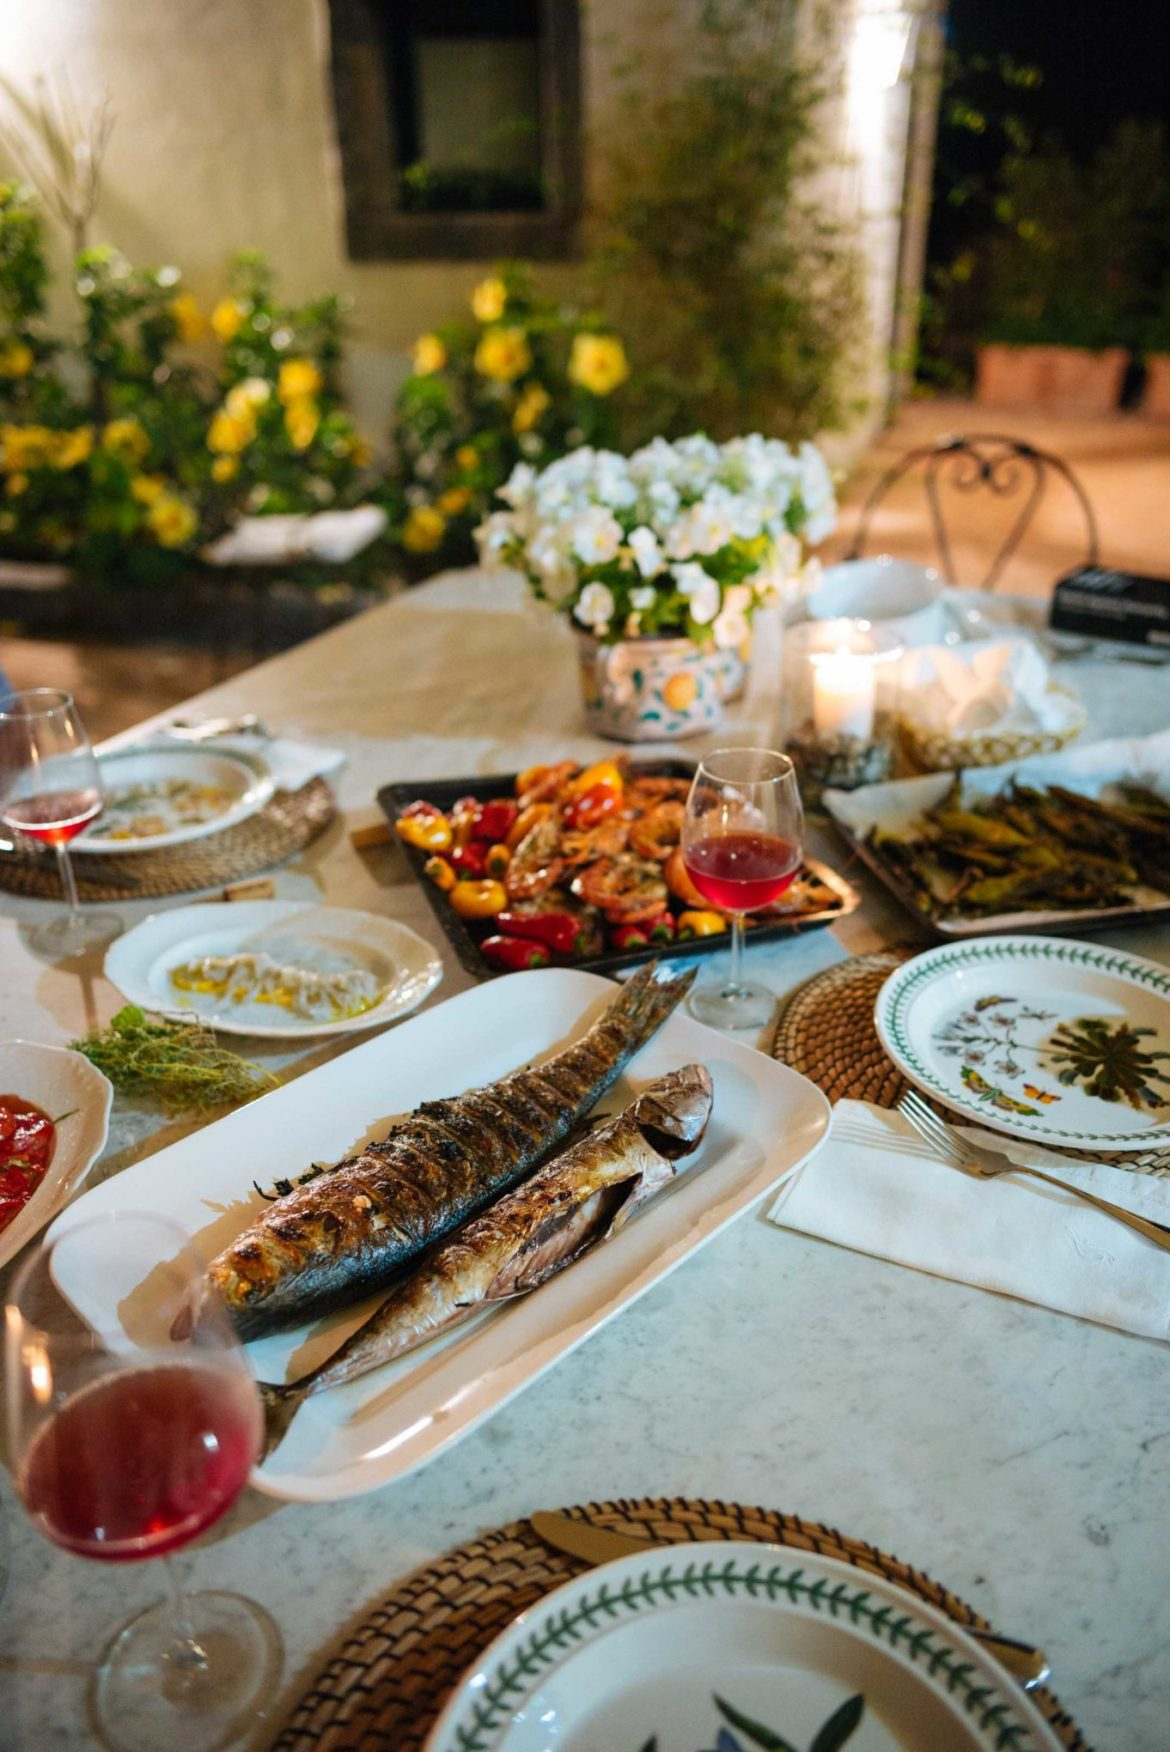 The Taste Edit grills dinner at our villa in Sicily Italy.